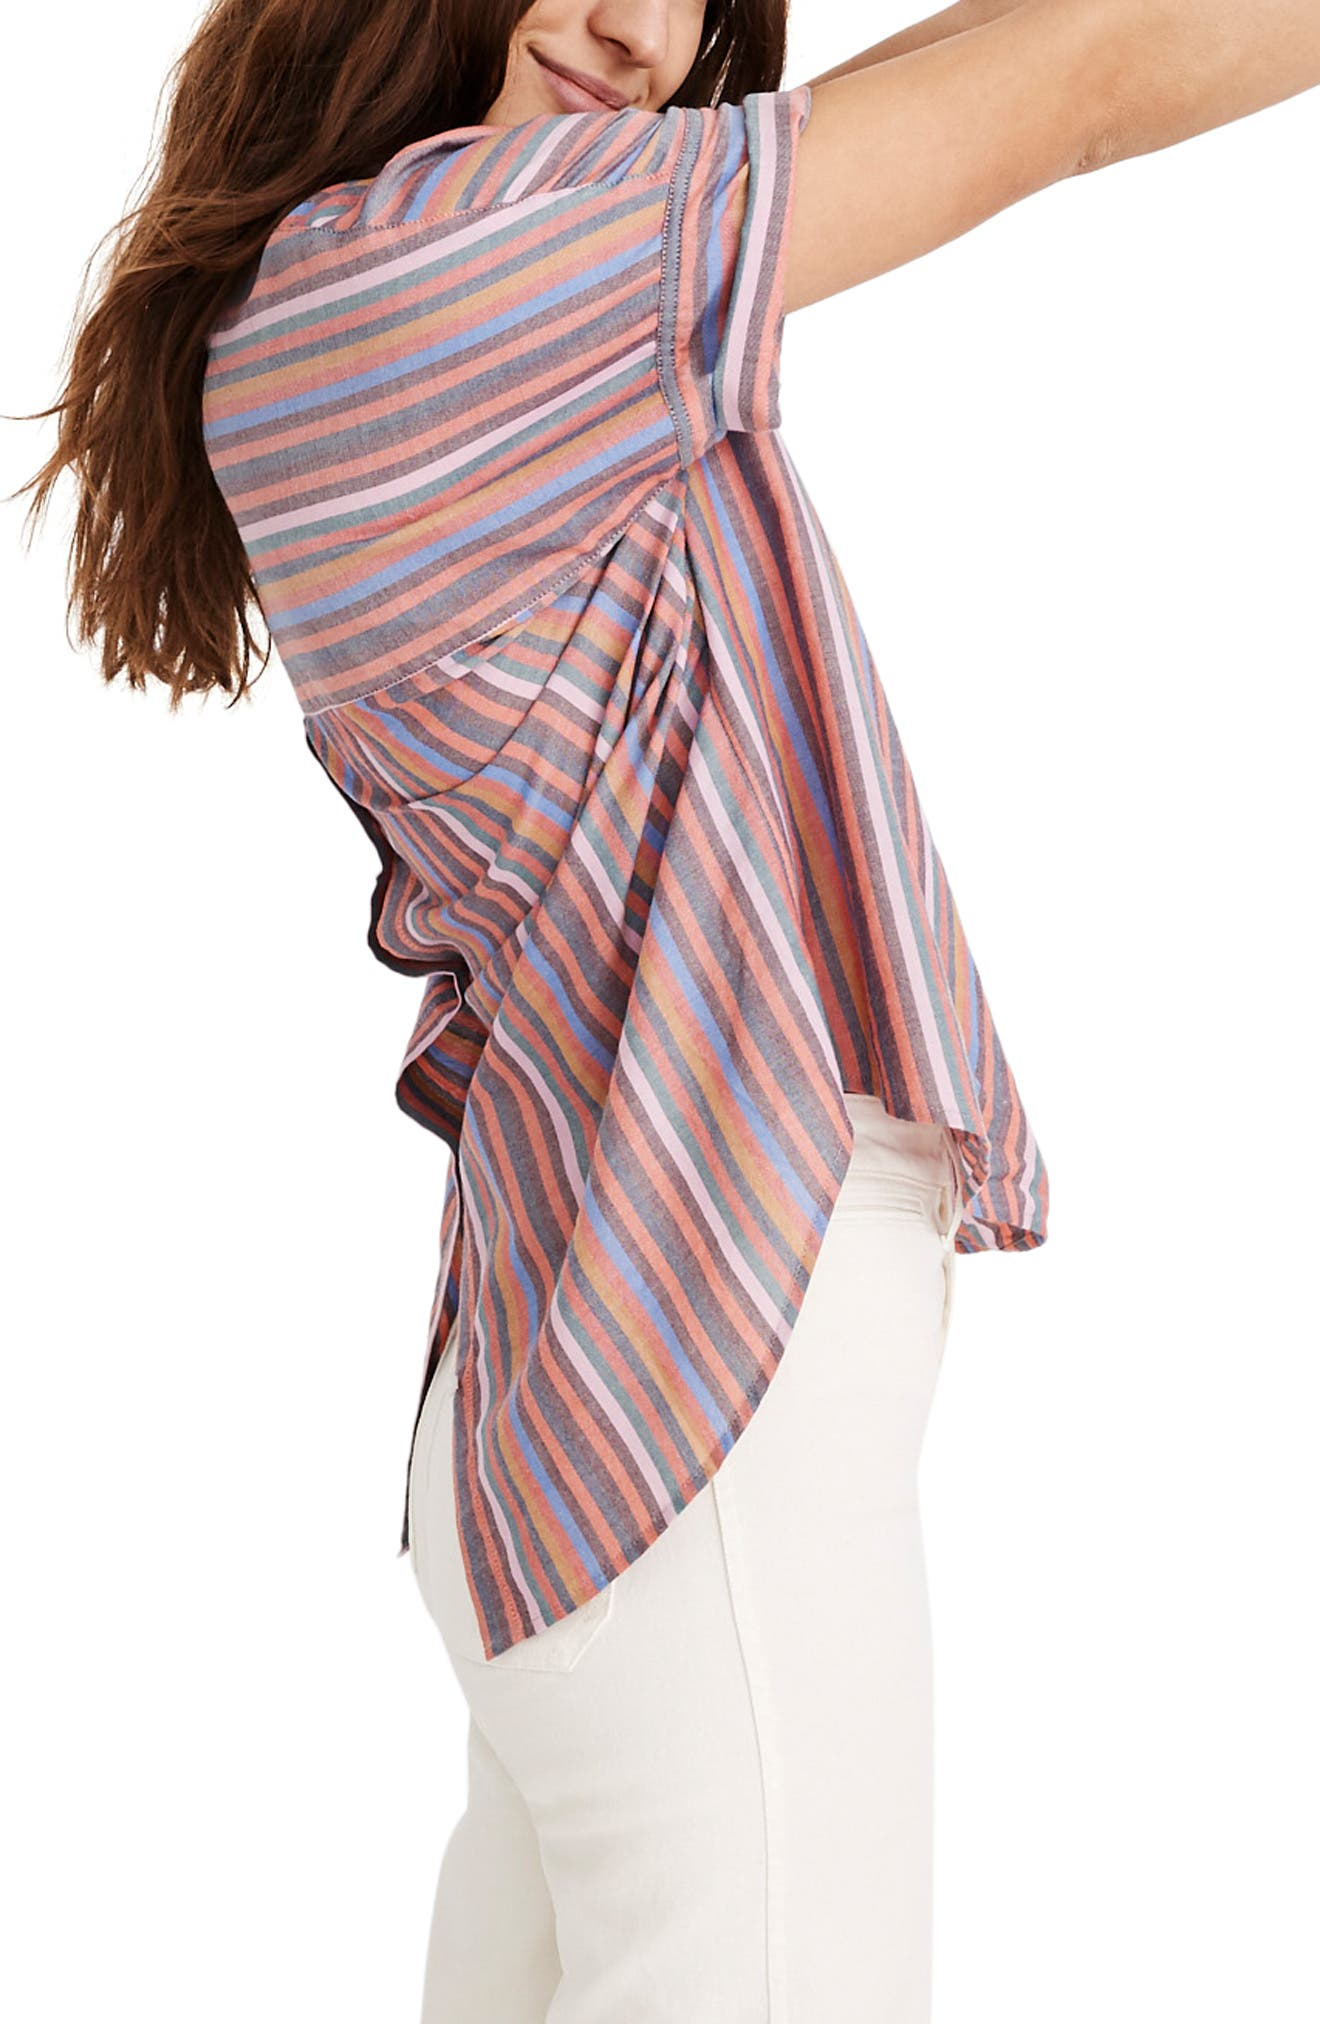 MADEWELL, Courier Rainbow Stripe Button Back Shirt, Alternate thumbnail 3, color, MULLED WINE SMITH STRIPE